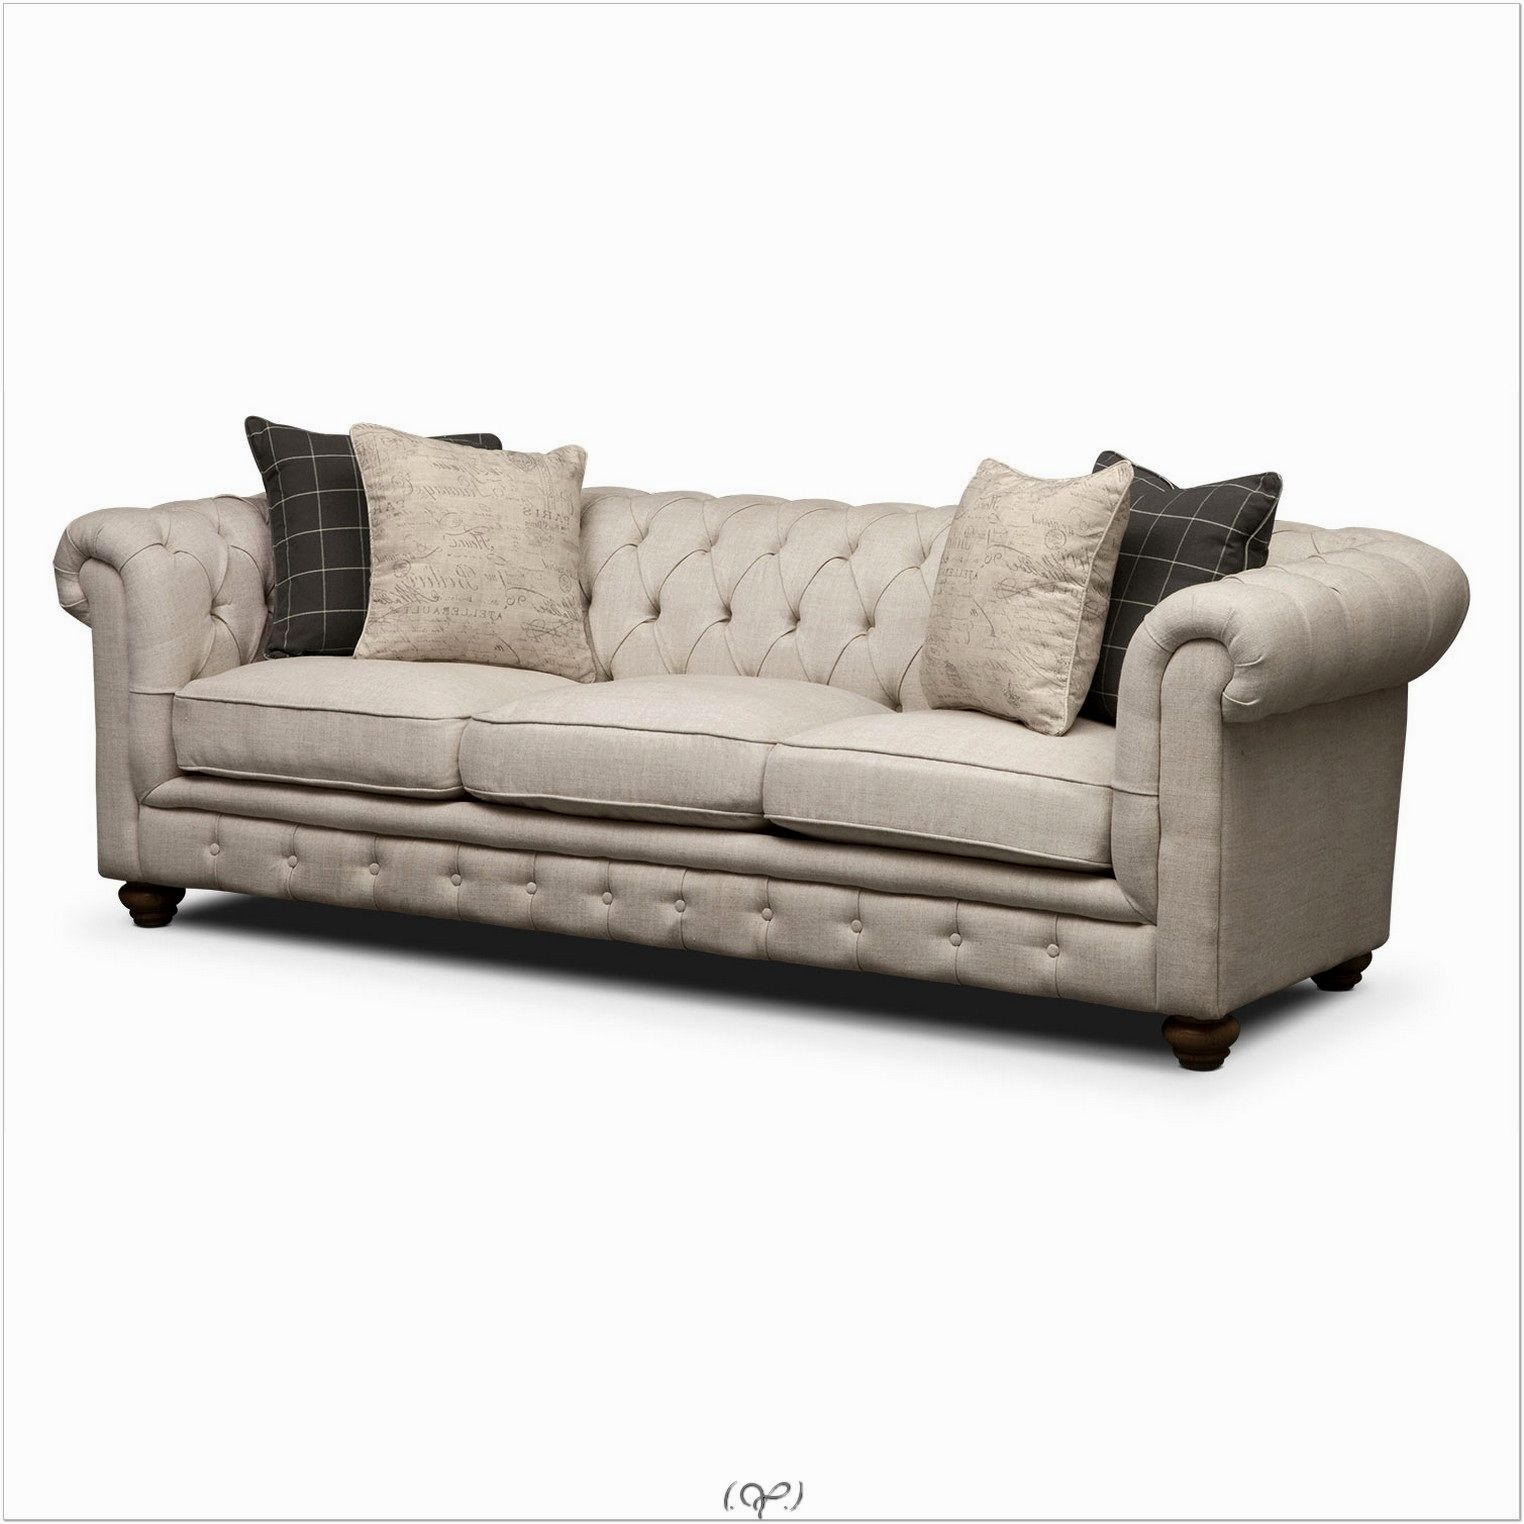 beautiful ashley sofa bed inspiration-Lovely ashley sofa Bed Image